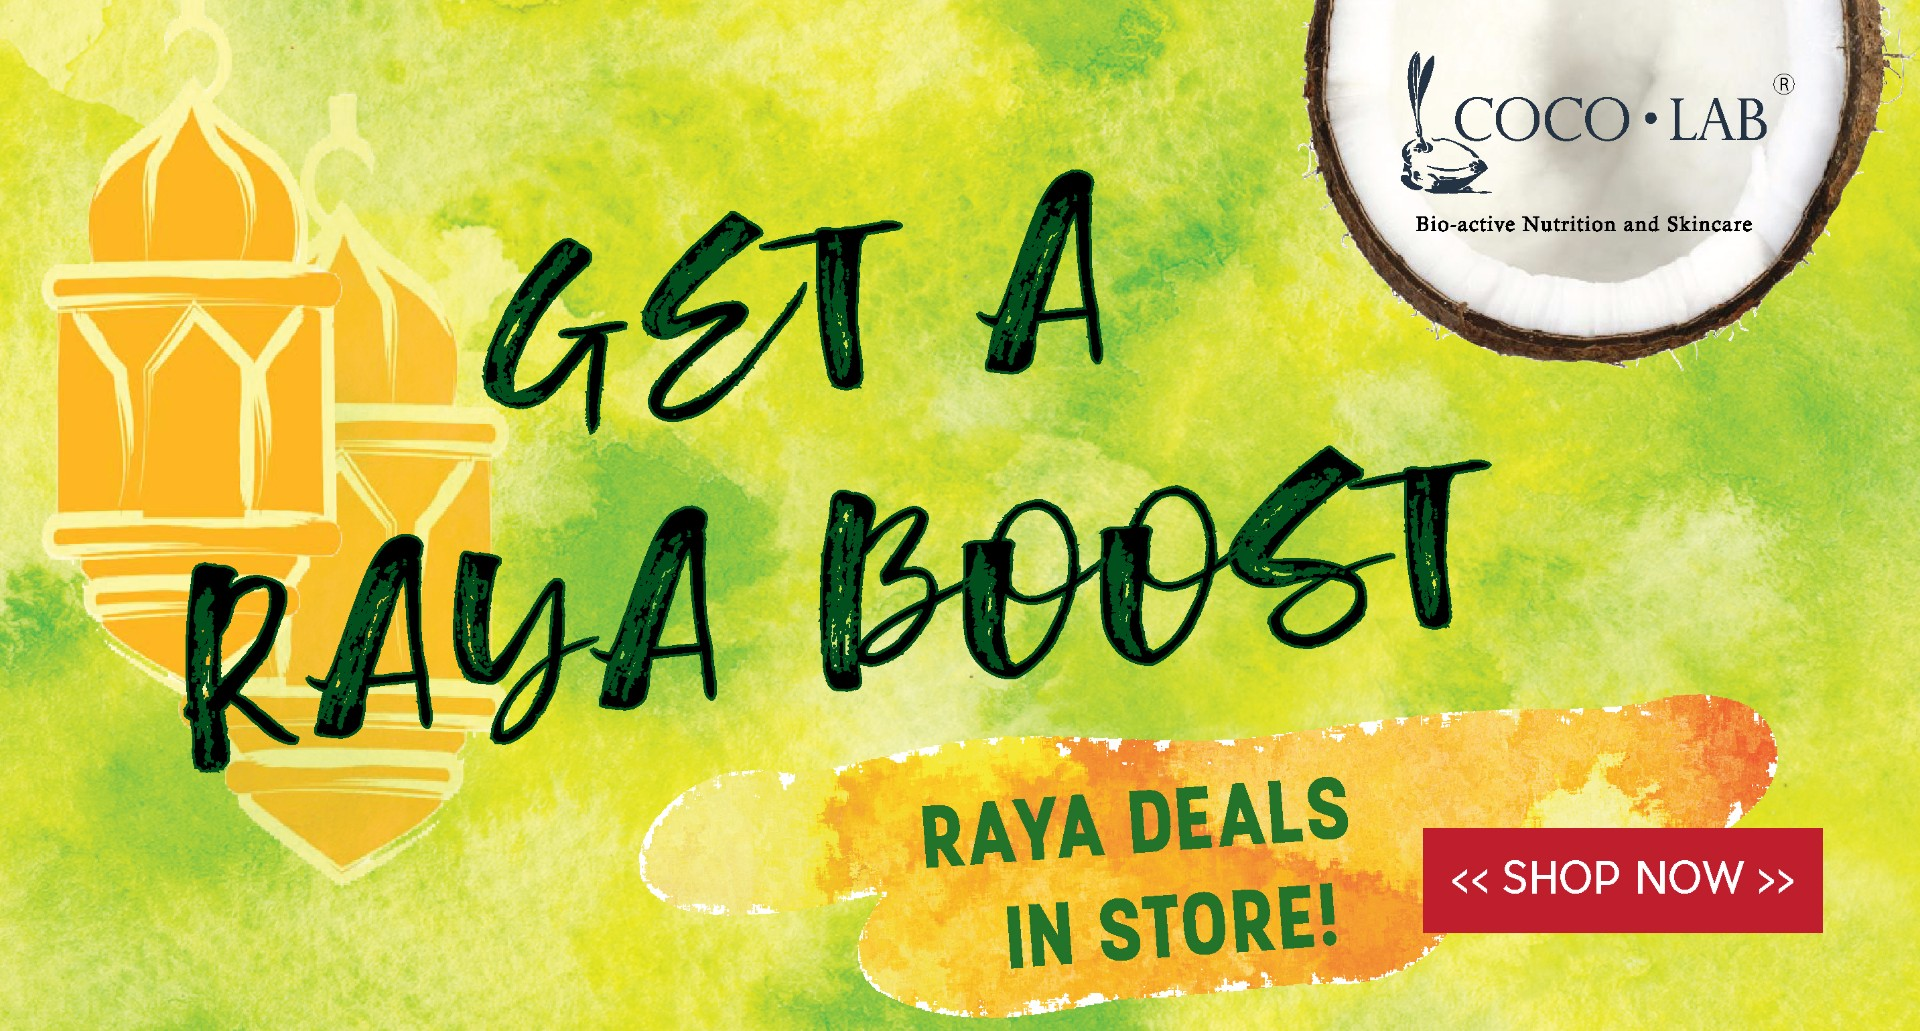 Raya Boost Deals now in stores!